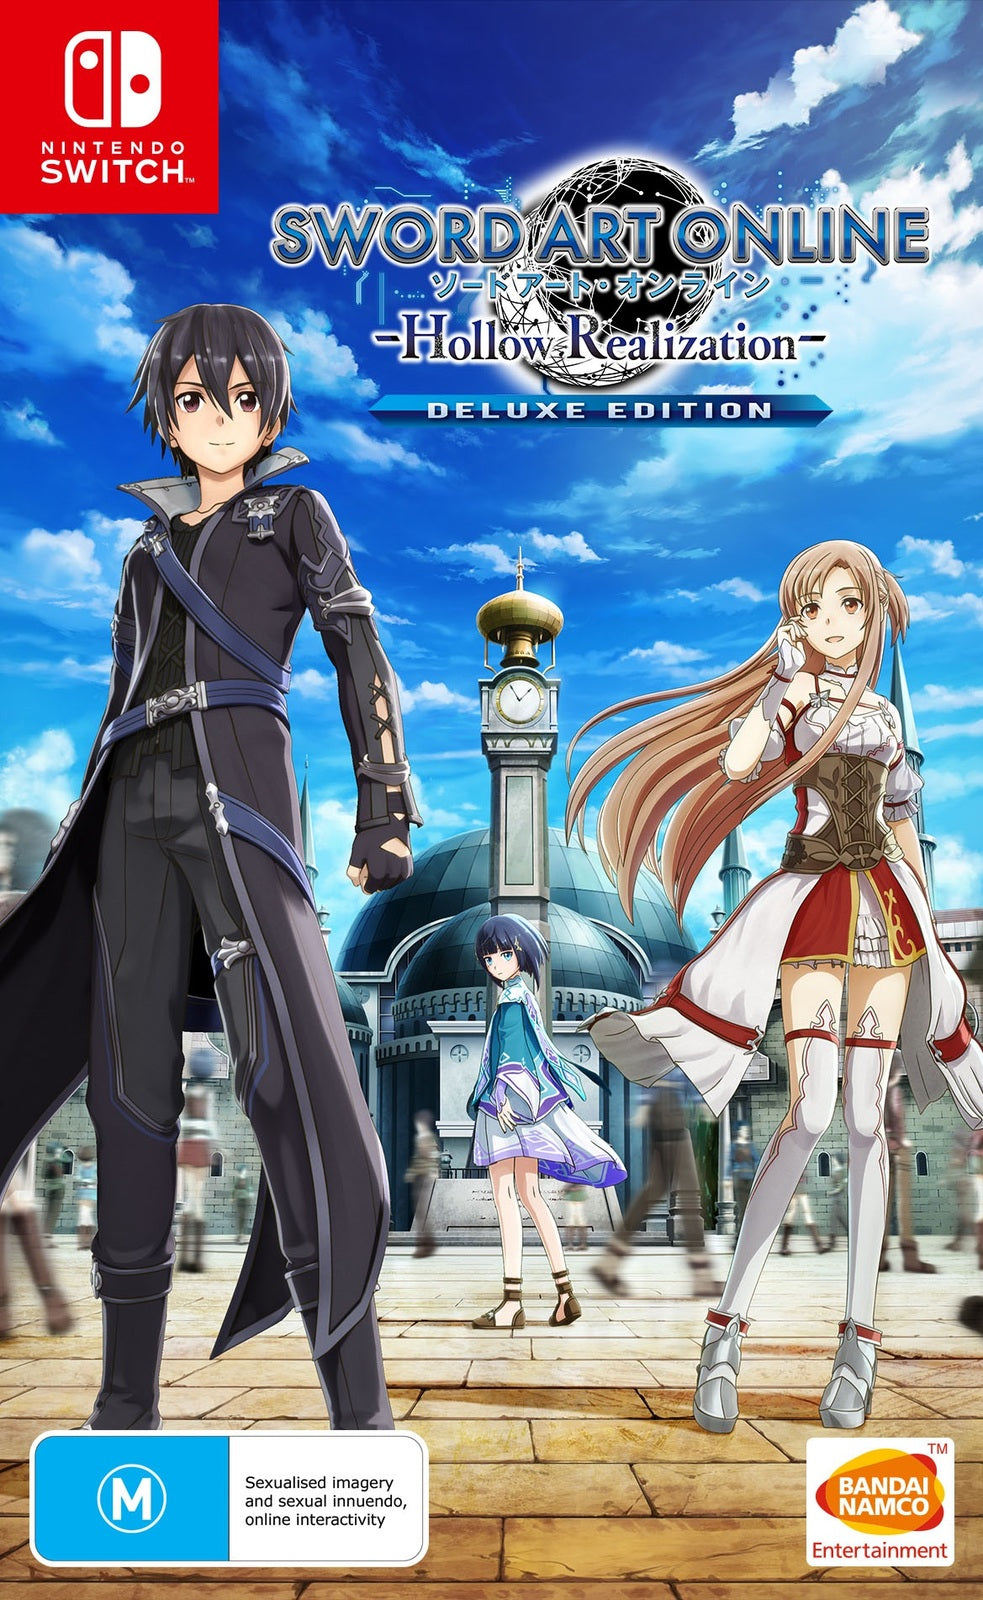 Sword Art Online: Hollow Realization Deluxe Edition - Nintendo Switch